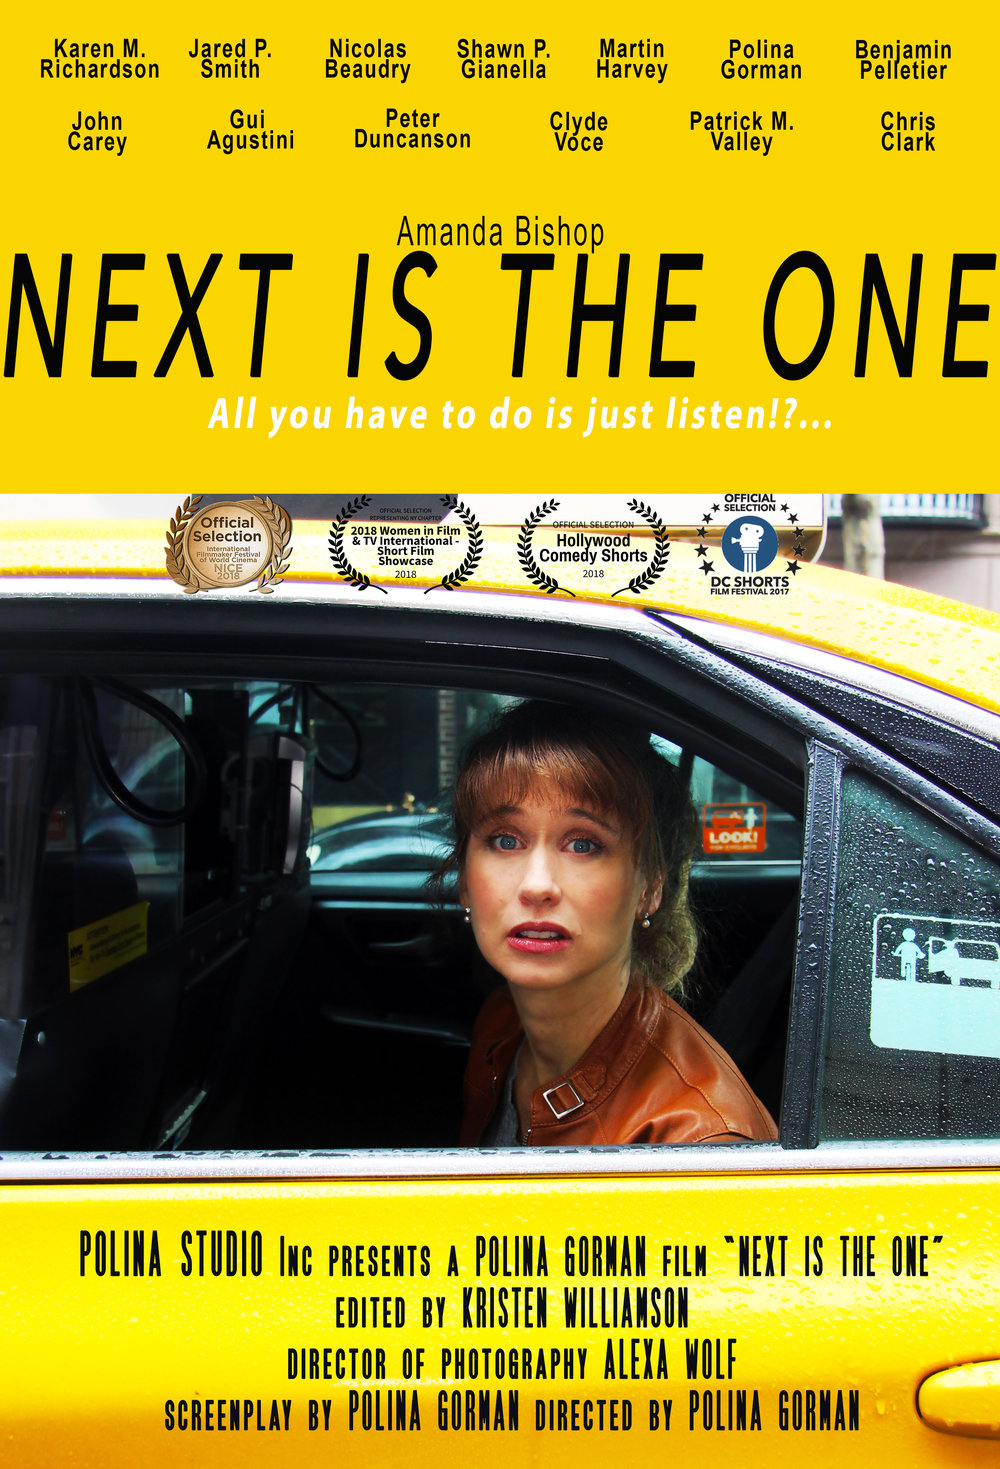 Polina  Gorman - NEXT IS THE ONE Poster_3_31_18.jpg